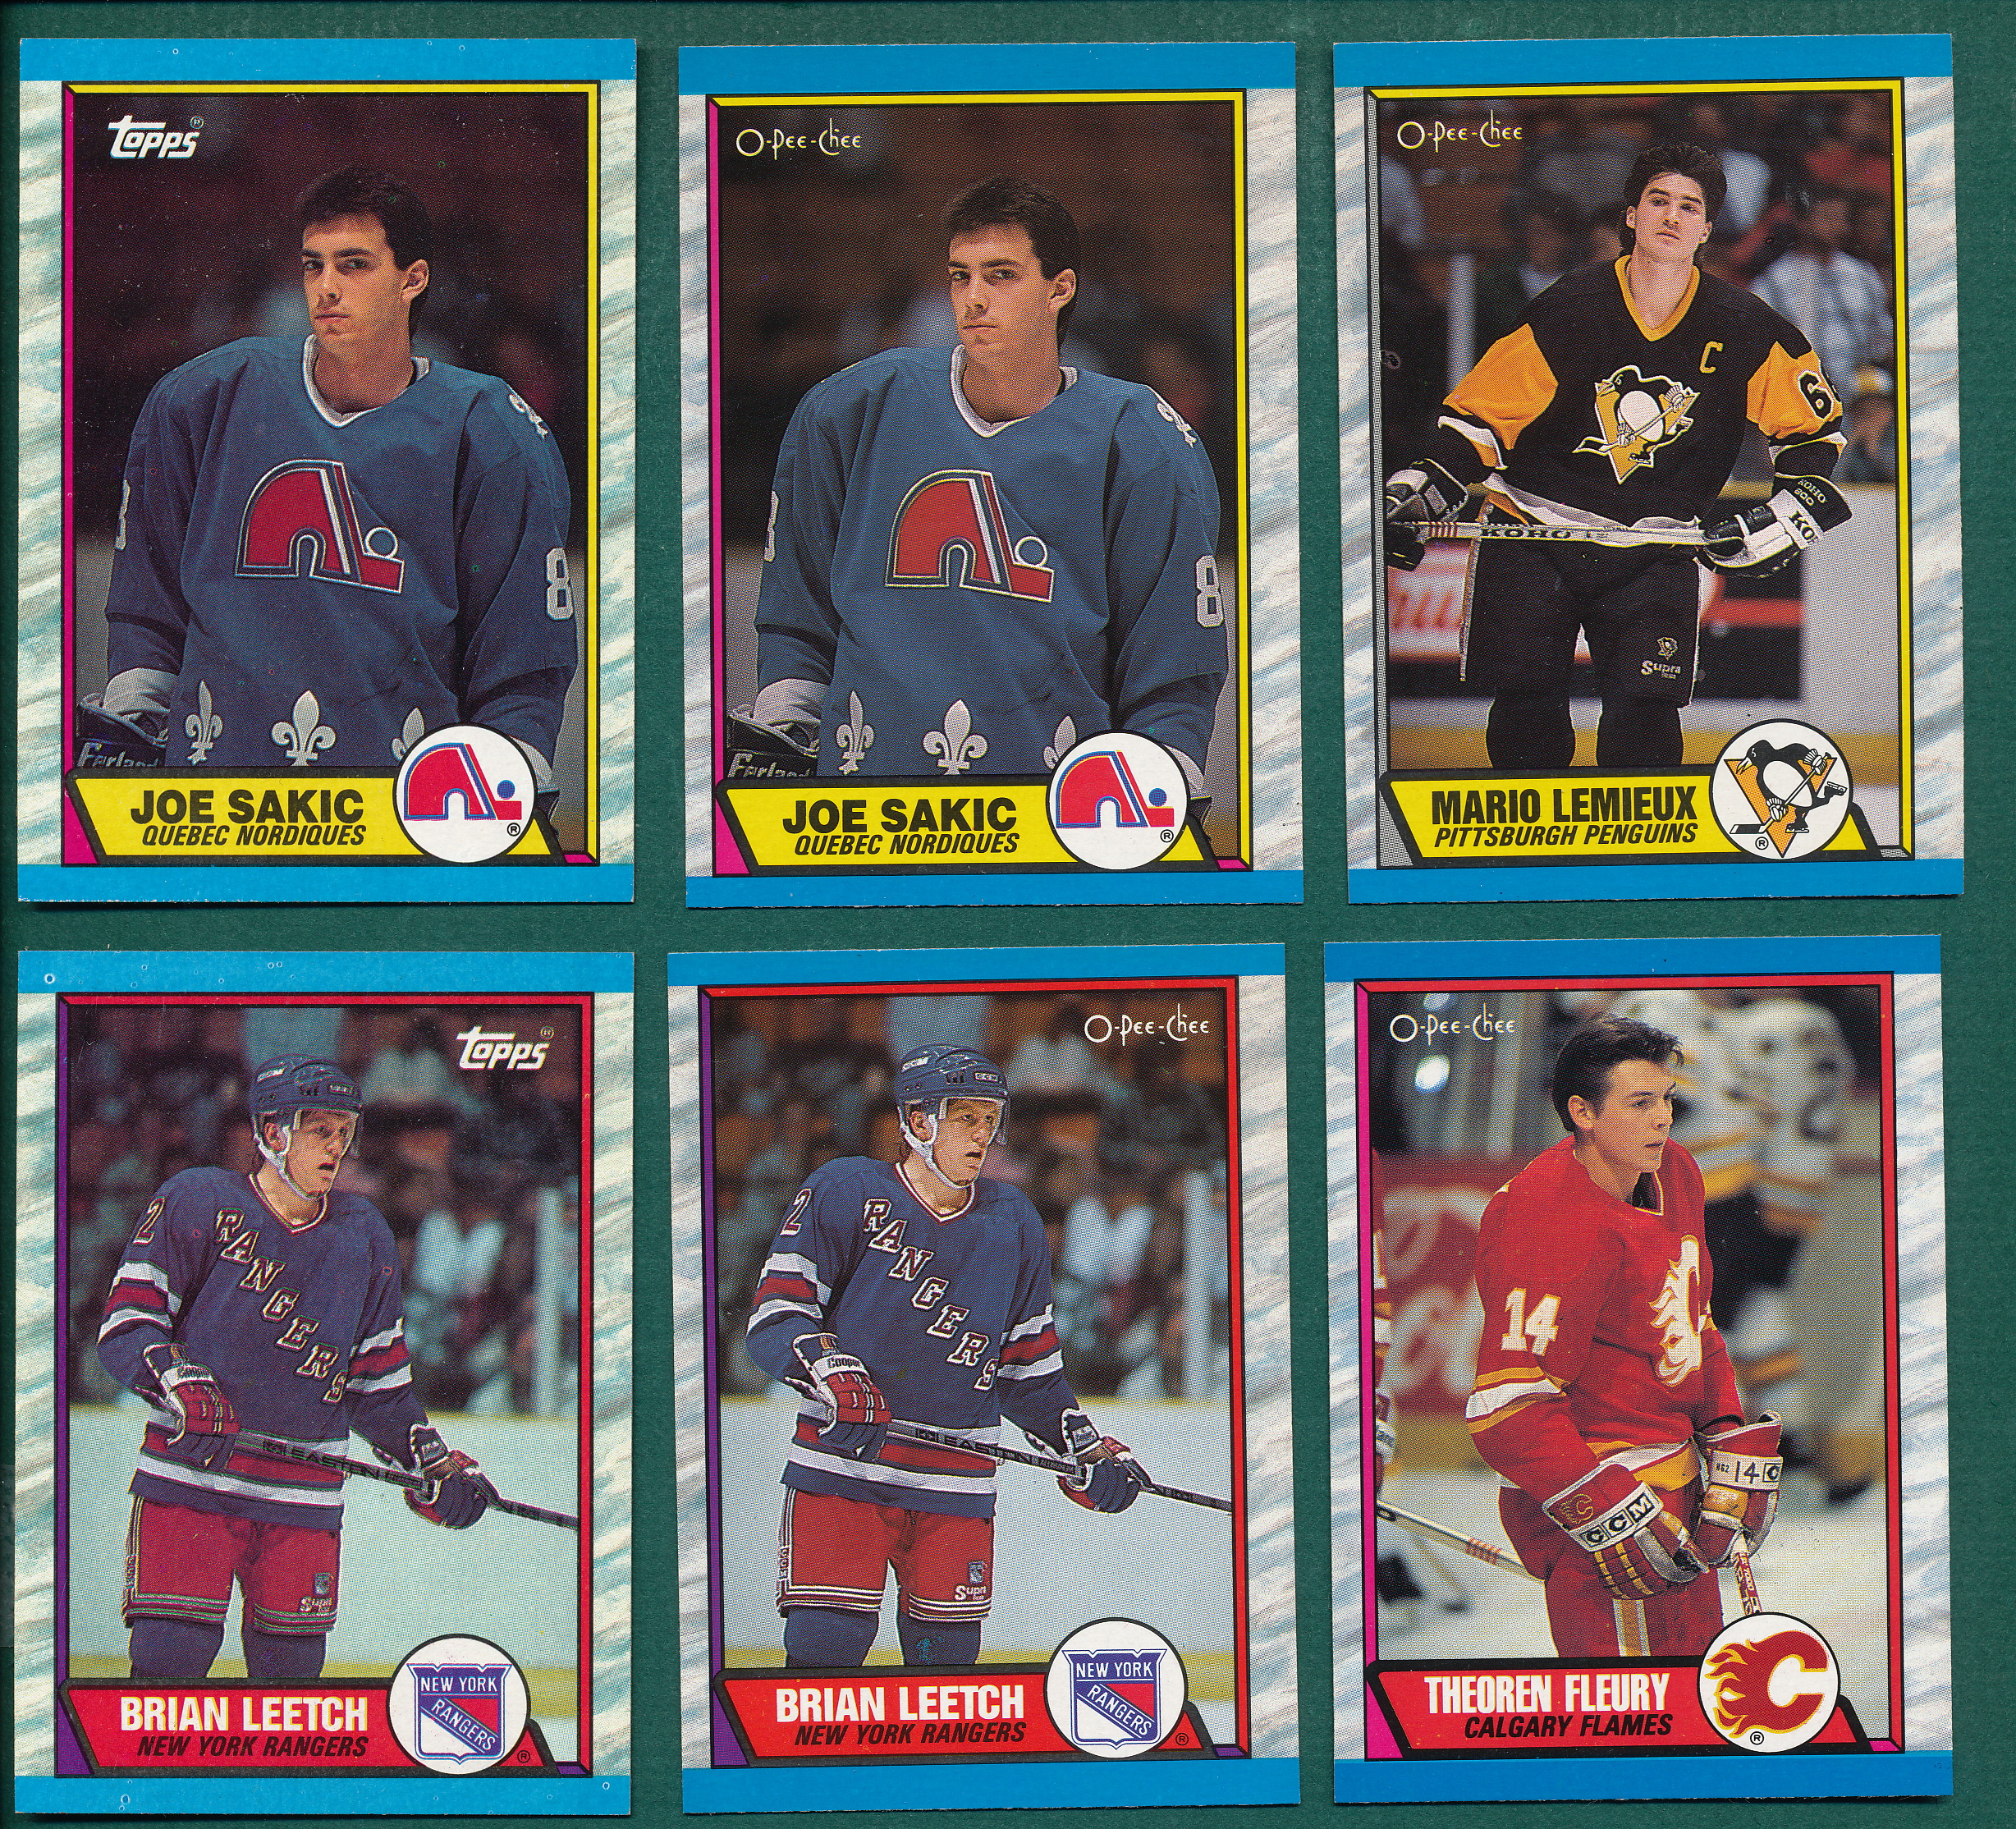 1989-90 O-Pee-Chee & Topps Hockey Complete